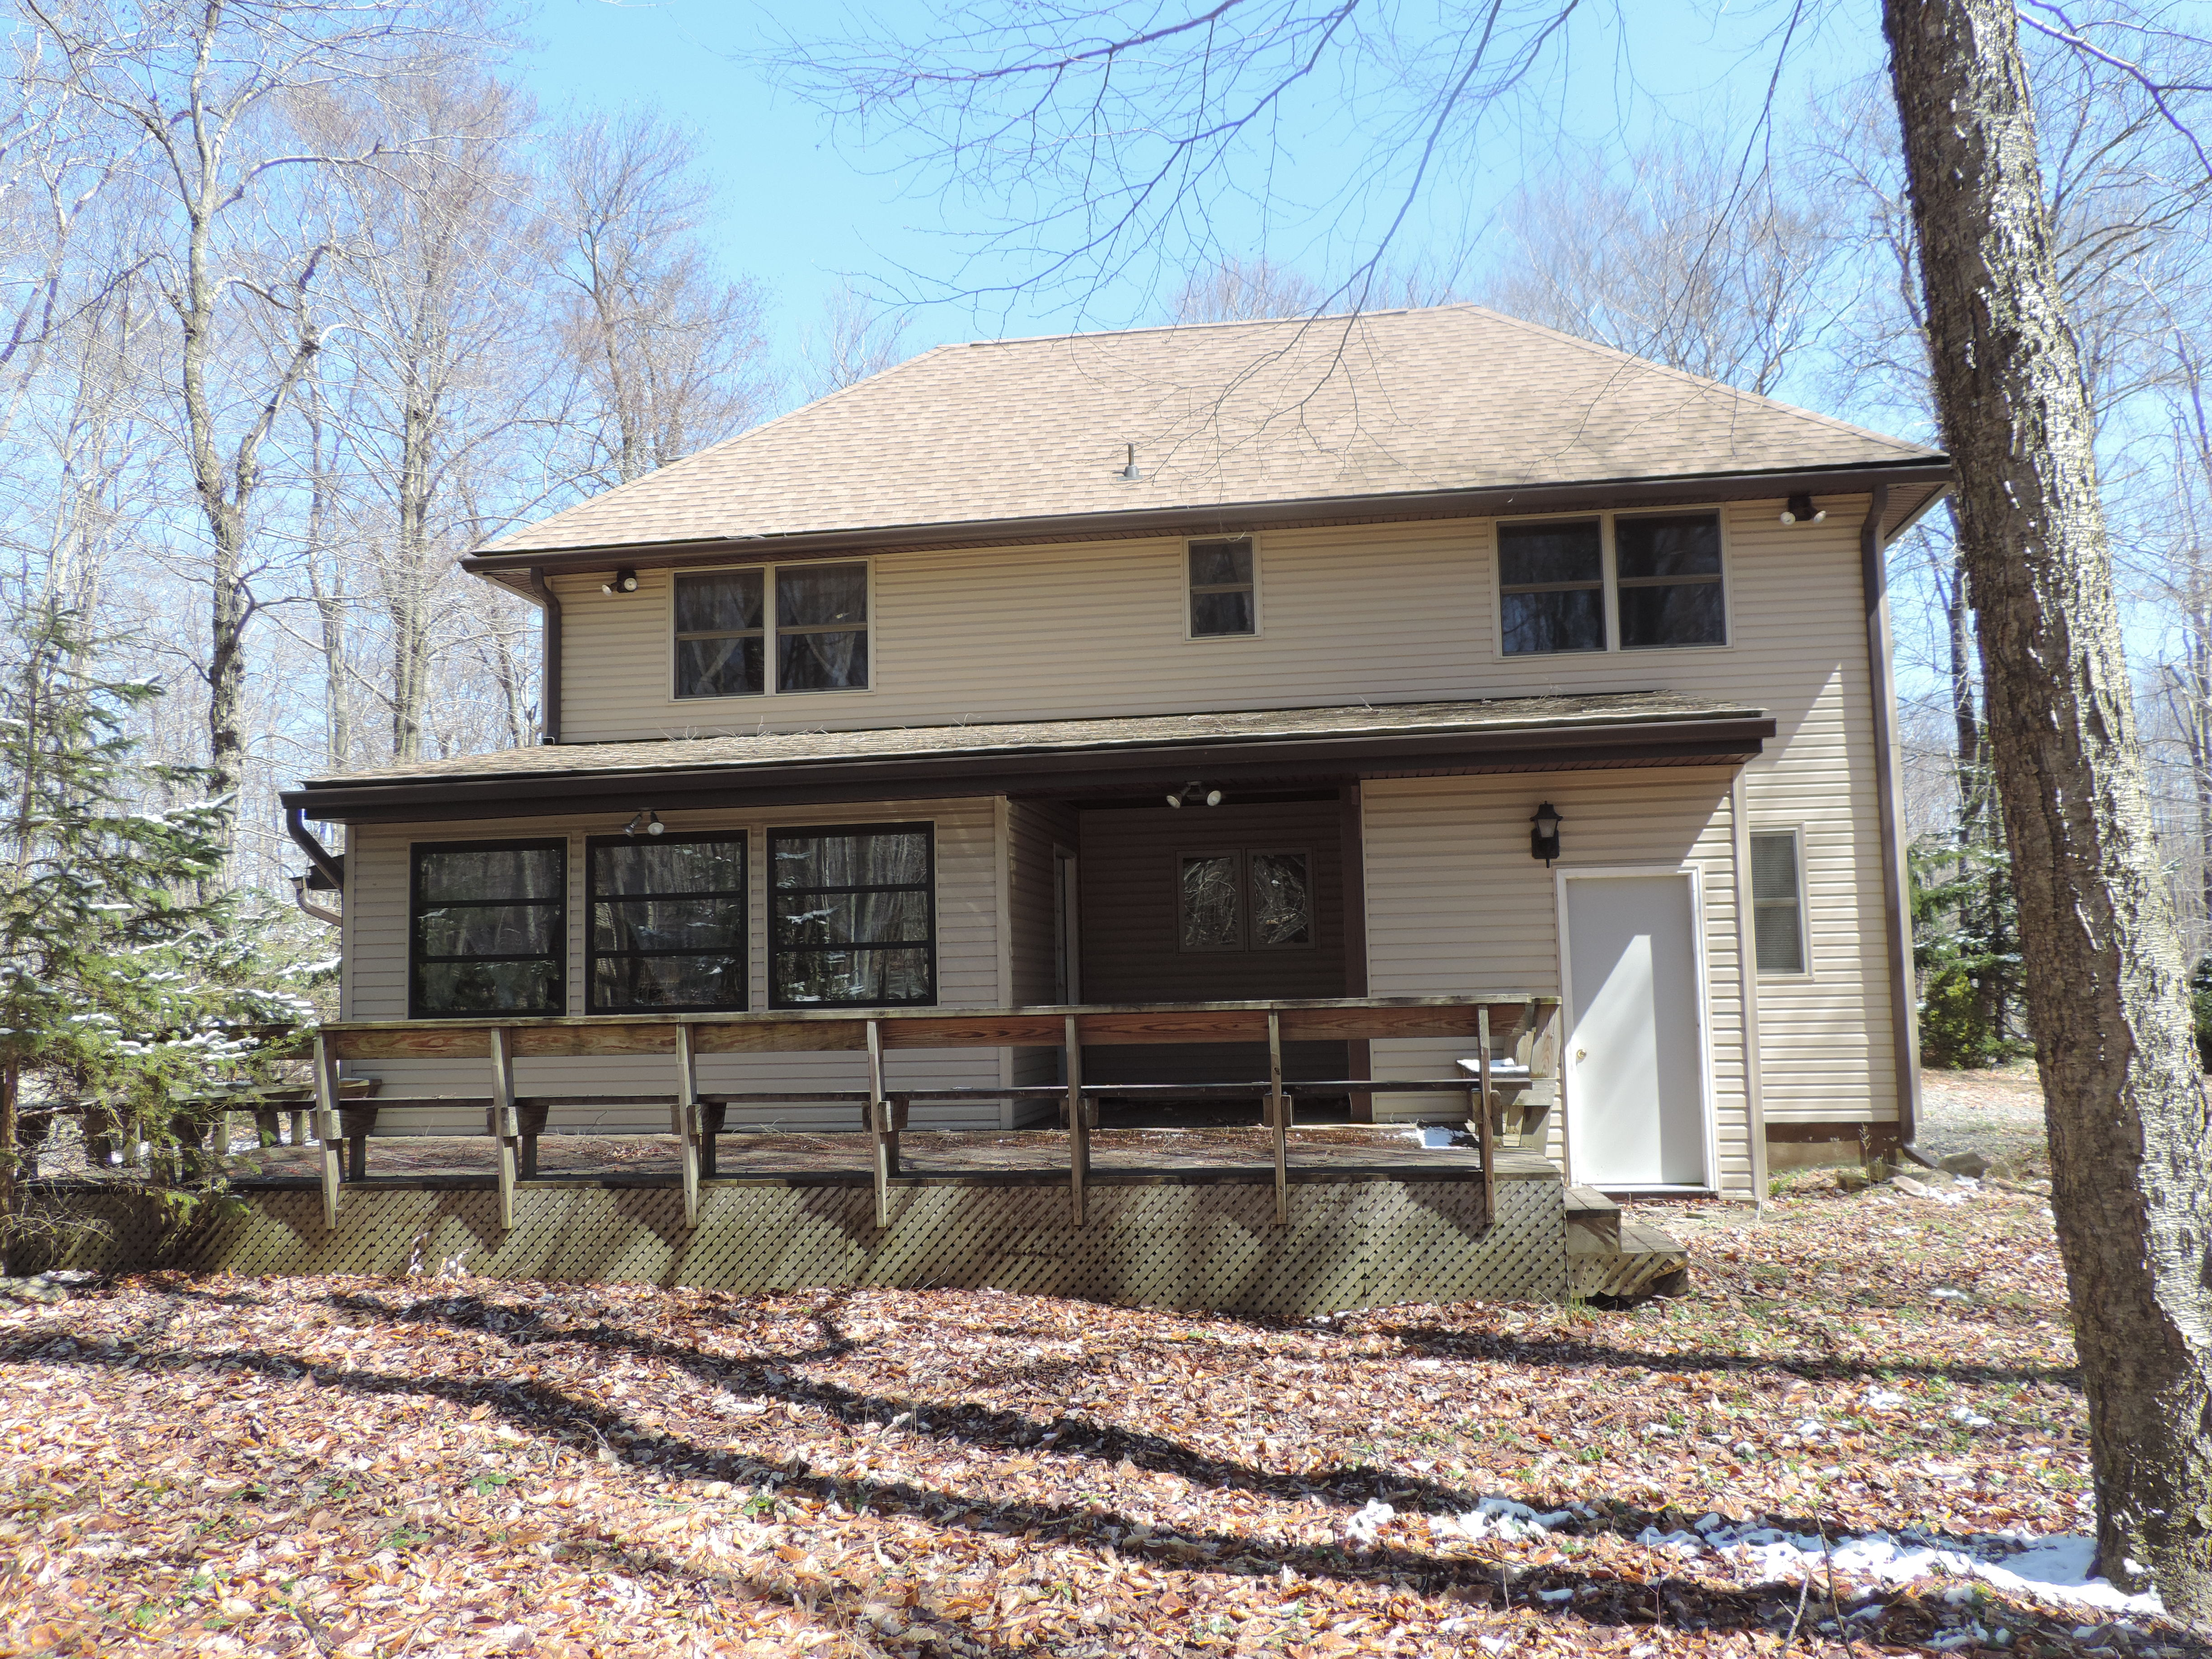 26 State Park Drive Gouldsboro Pa 18424